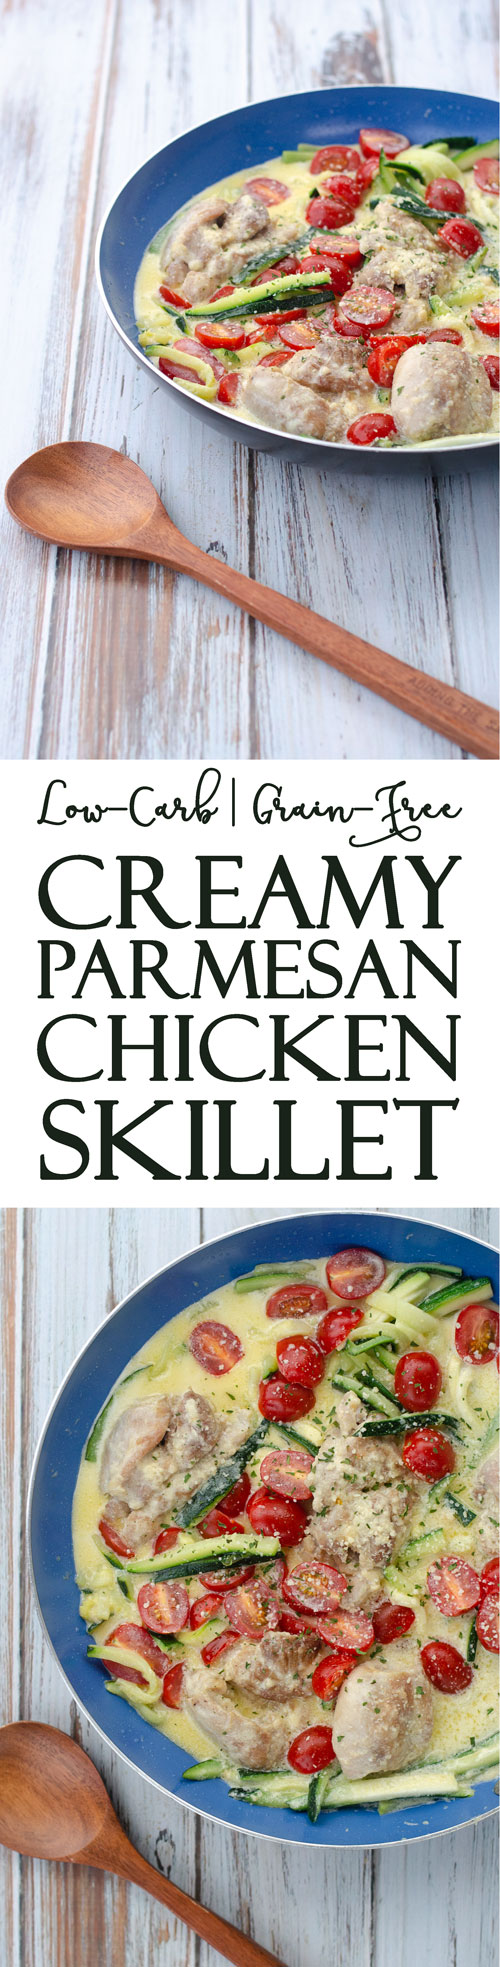 An easy 20 minute skillet recipe, this creamy Parmesan chicken skillet is loaded with healthy fats, veggies and protein-packed chicken. Low-carb, ketogenic, gluten-free, grain-free.